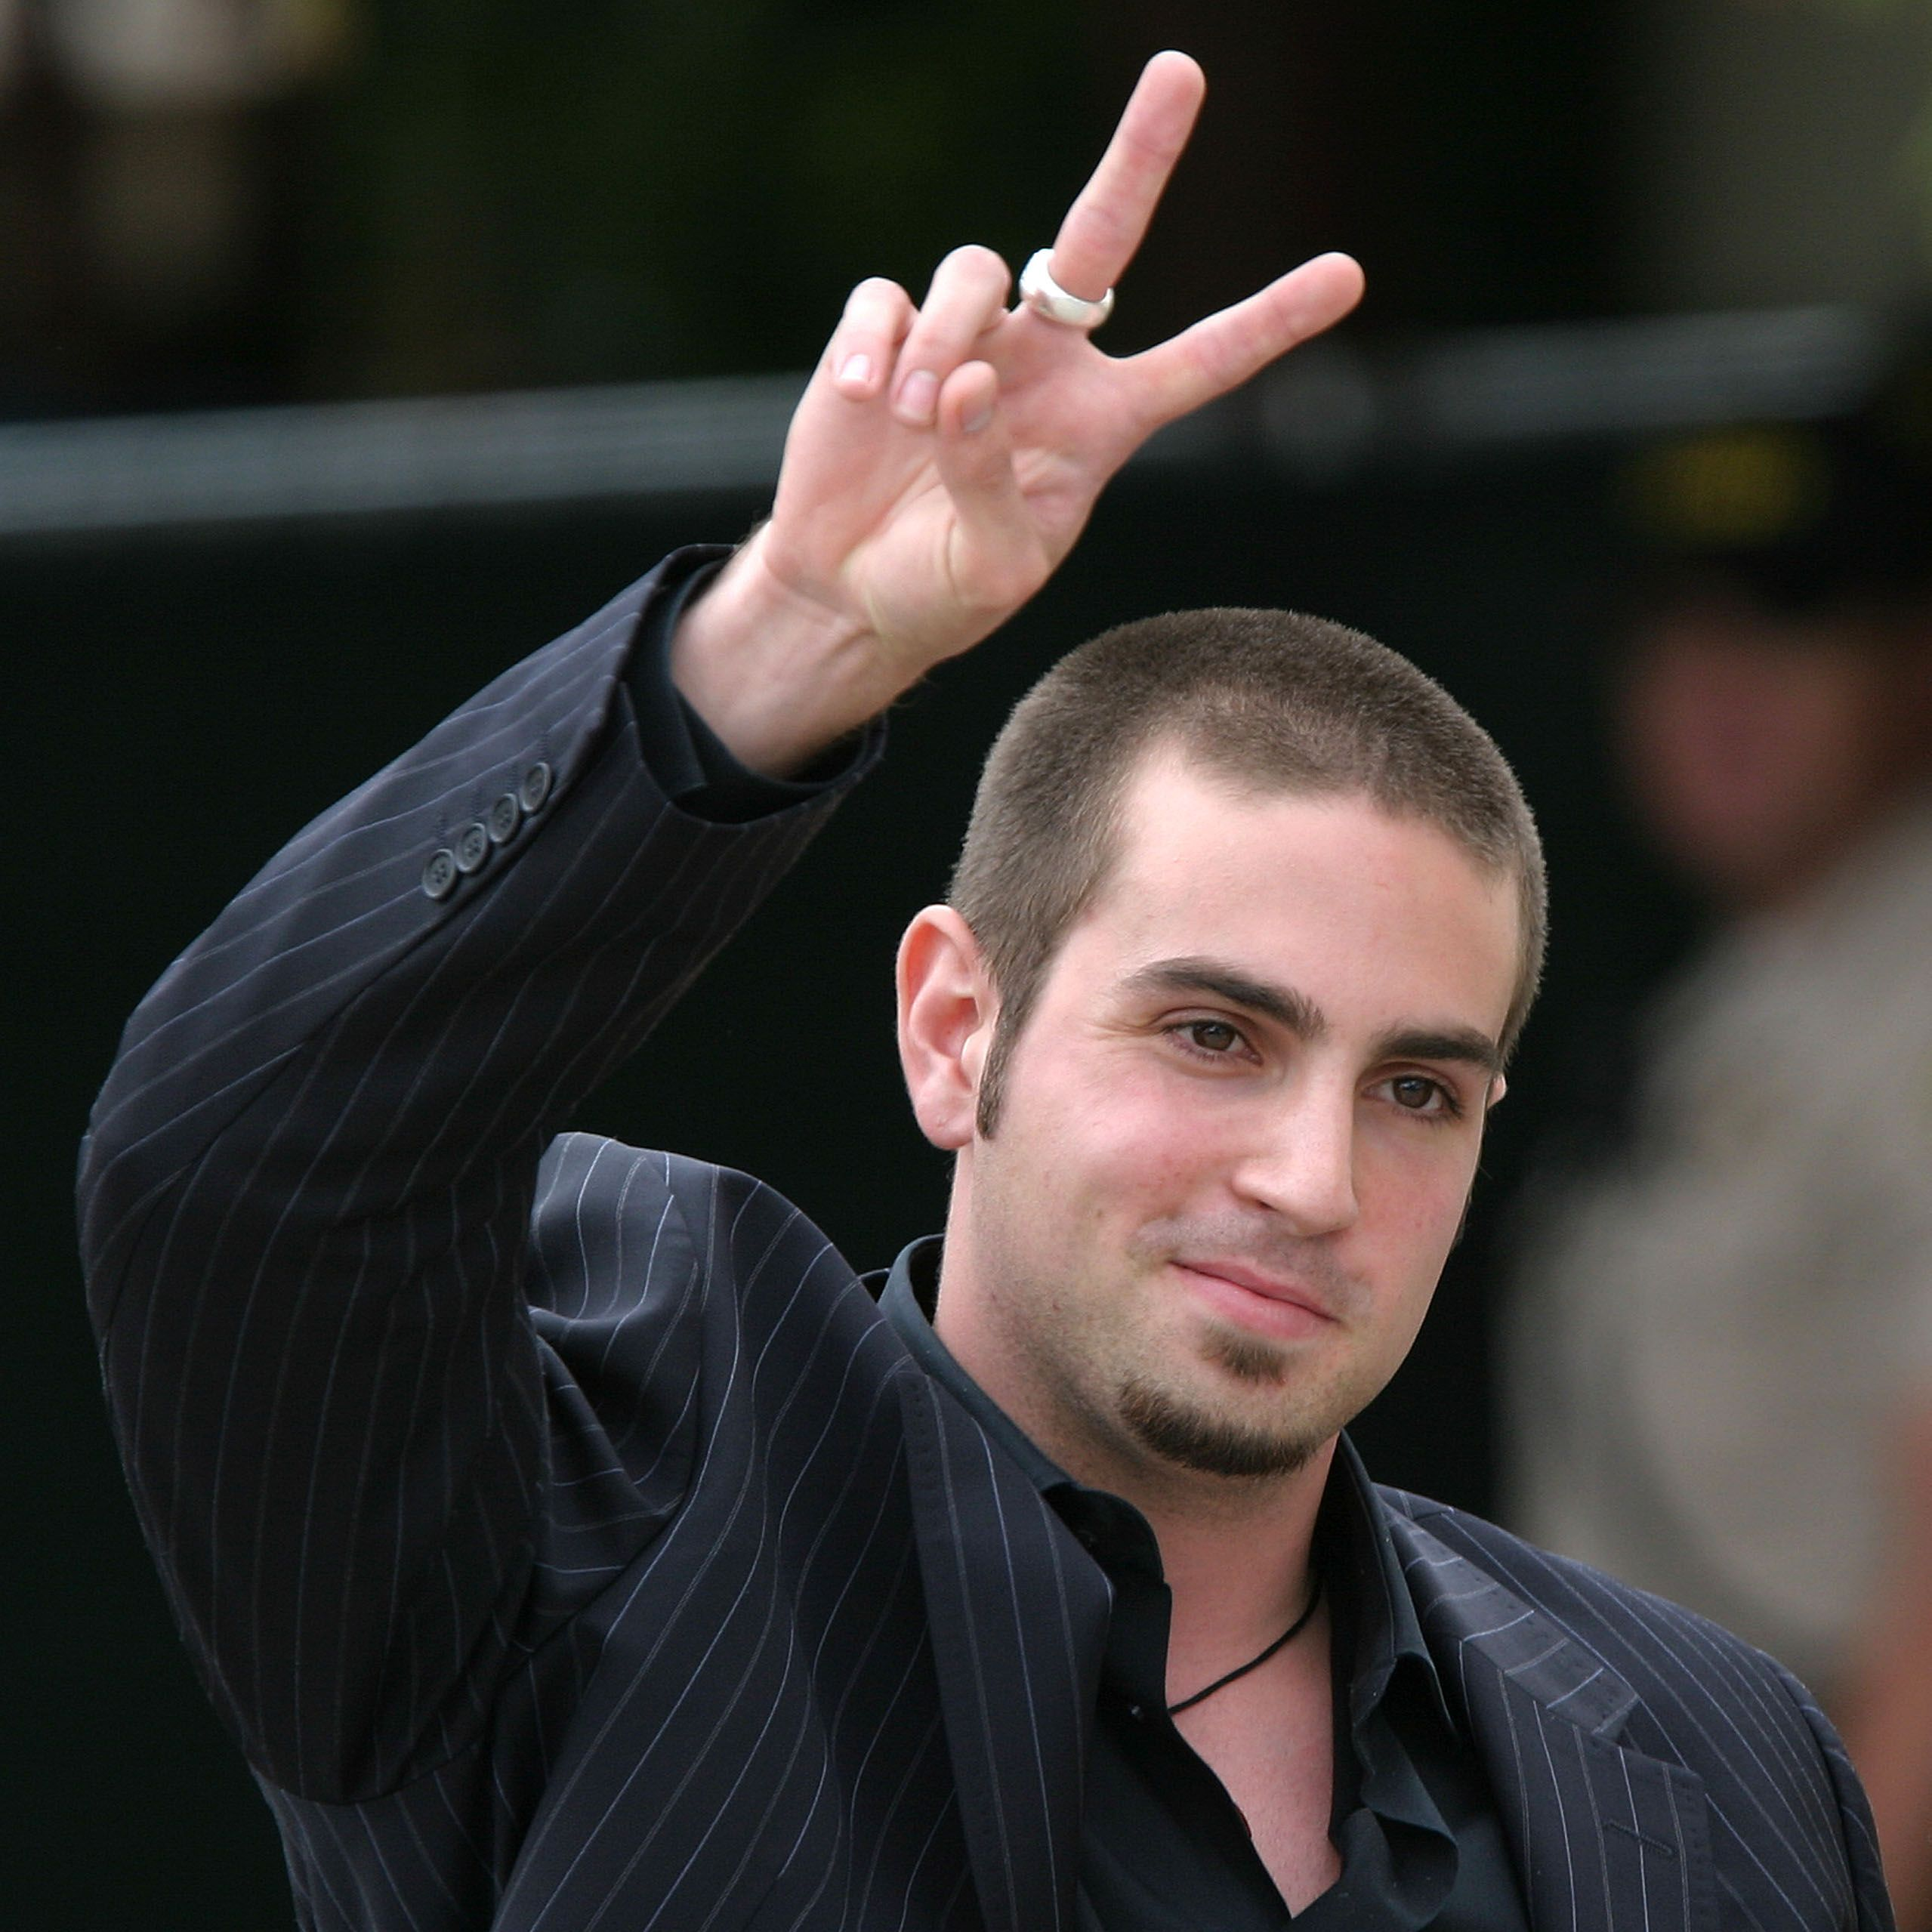 Wade Robson testified that Jackson hadn't touched him inappropriately.